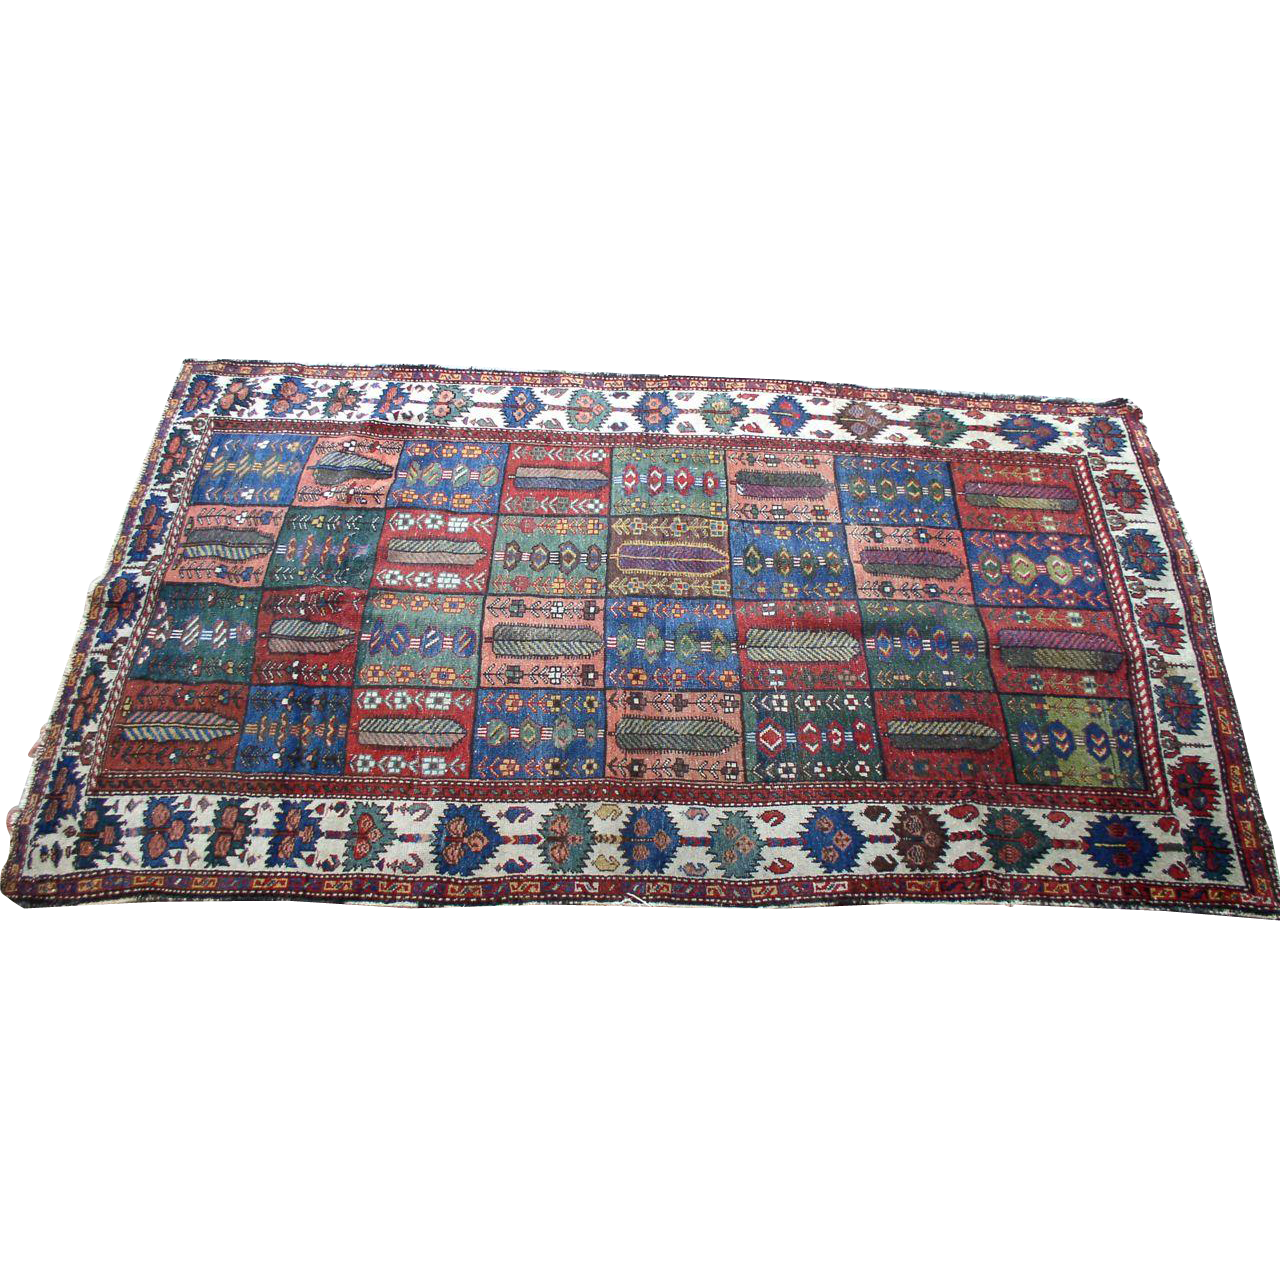 Antique Early Hand Woven 7'  by 4' KAZAK Rug